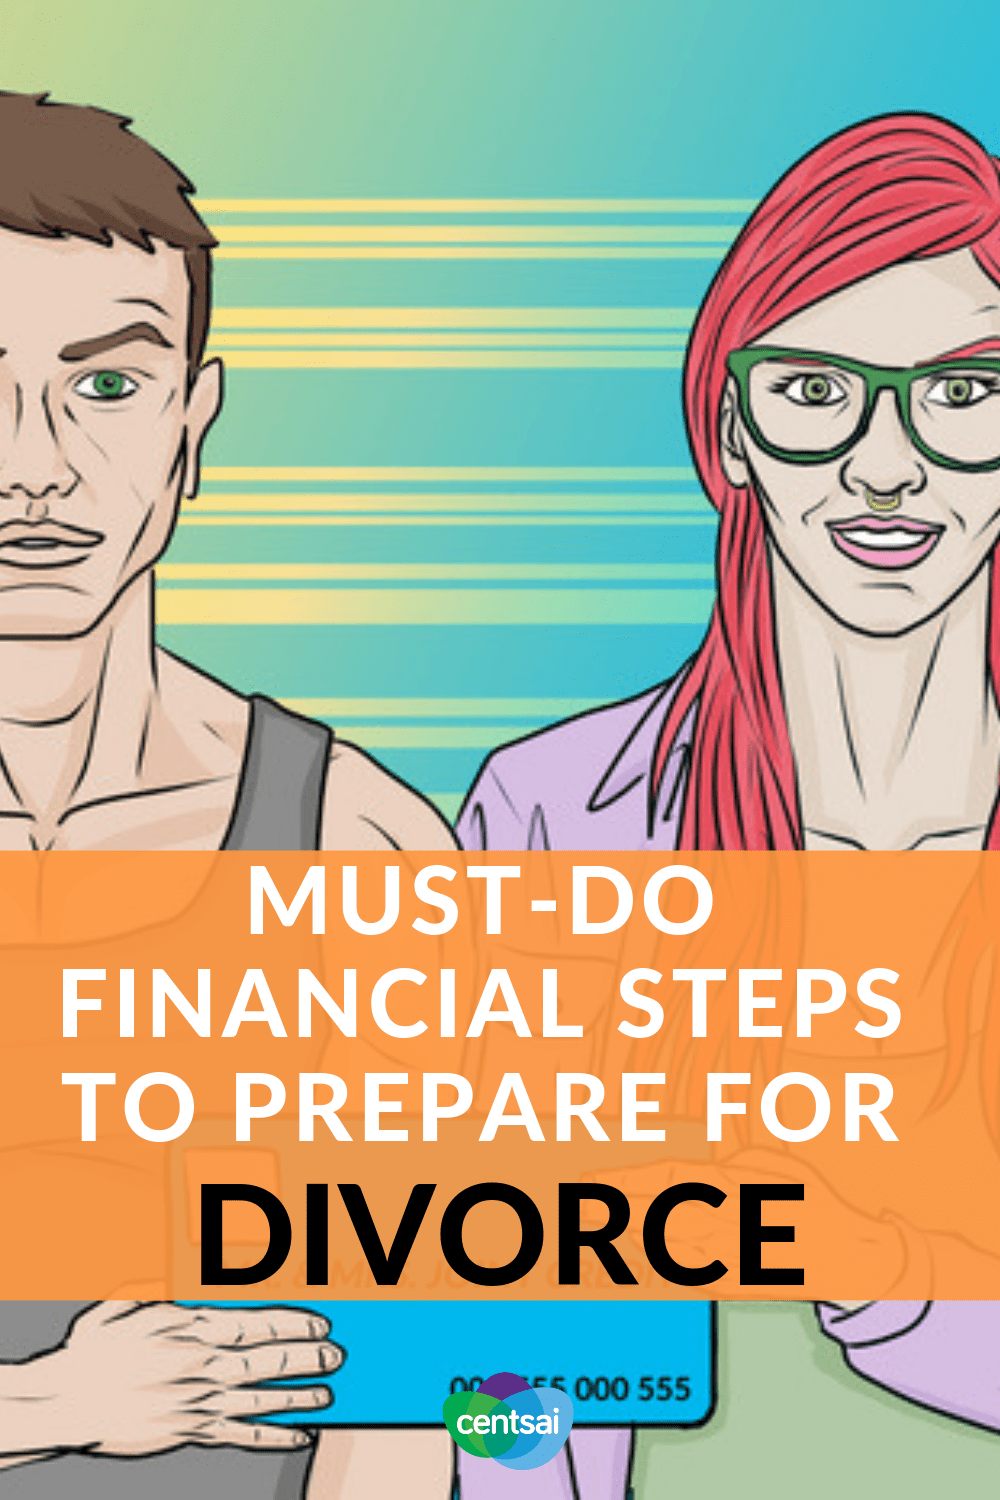 Must-Do Financial Steps to Prepare for Divorce. If you're ready to leave a marriage, you need to get your finances in order. So what do you do to prepare for divorce financially? Click this out to learn more. #financialplanning #divorce #marriage #relationship